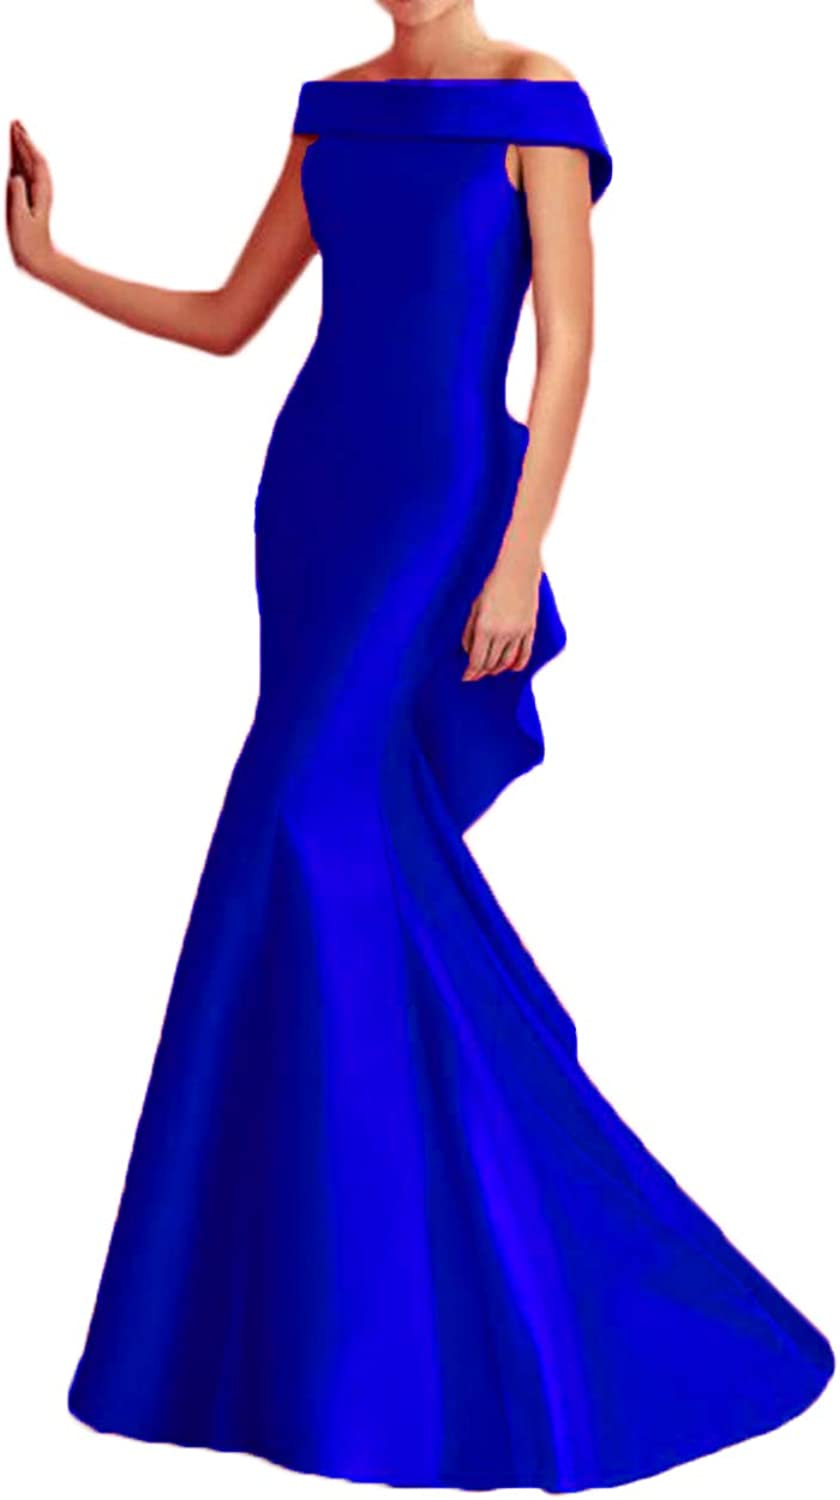 Alilith.Z Off The Shoulder Prom Dresses 2019 Mermaid Long Satin Evening Dresses Party Gowns for Women with Ruffles